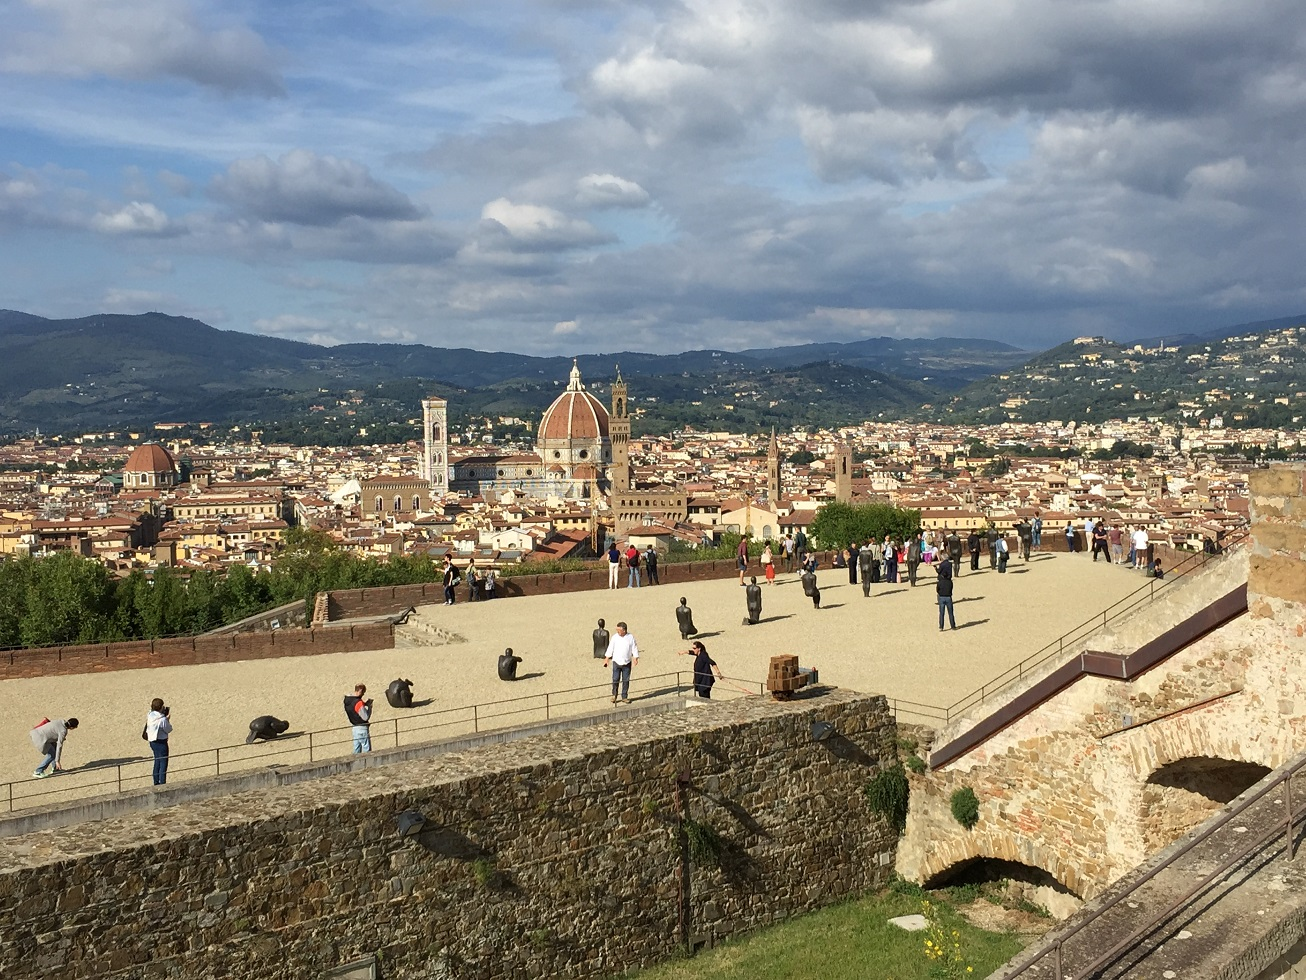 JCU students visit an exhibit at Forte di Belvedere in Florence